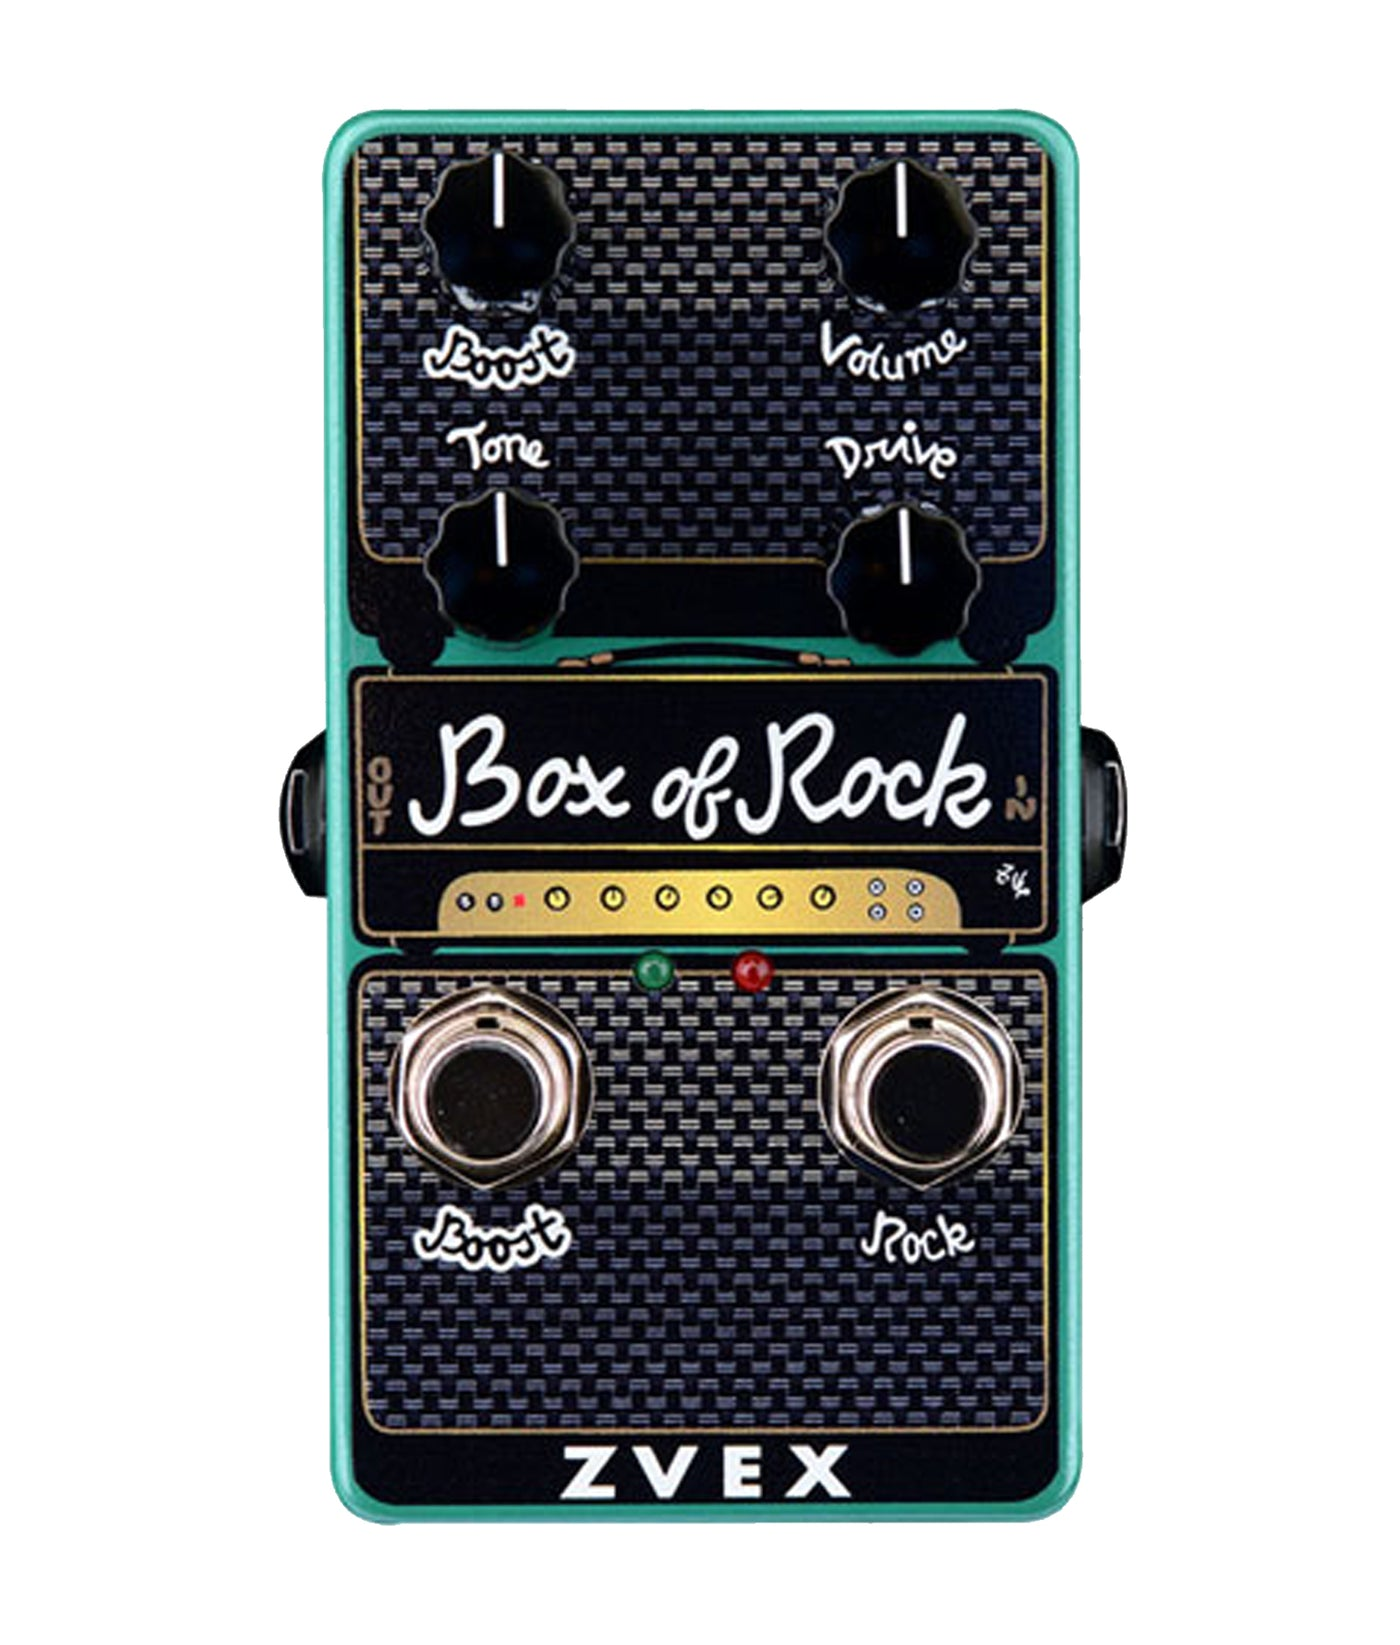 Vexter Series Clean Boost /& Distortion Pedal! ZVEX BOX OF ROCK NEW